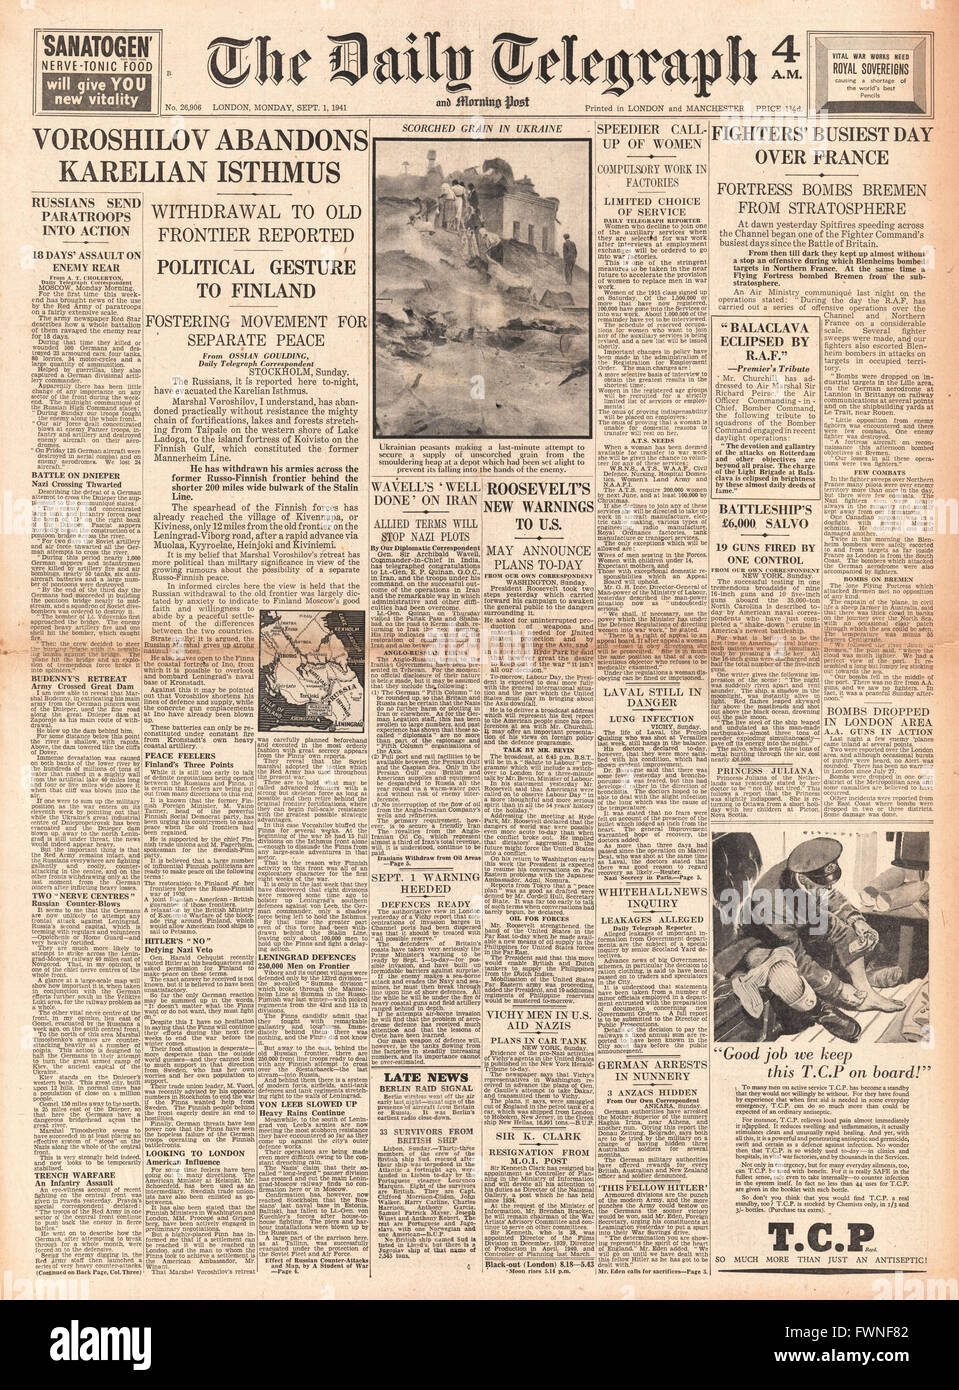 1941 front page  Daily Telegraph Russian Army abandon Karelian Isthmus and Raf Bomb France Stock Photo